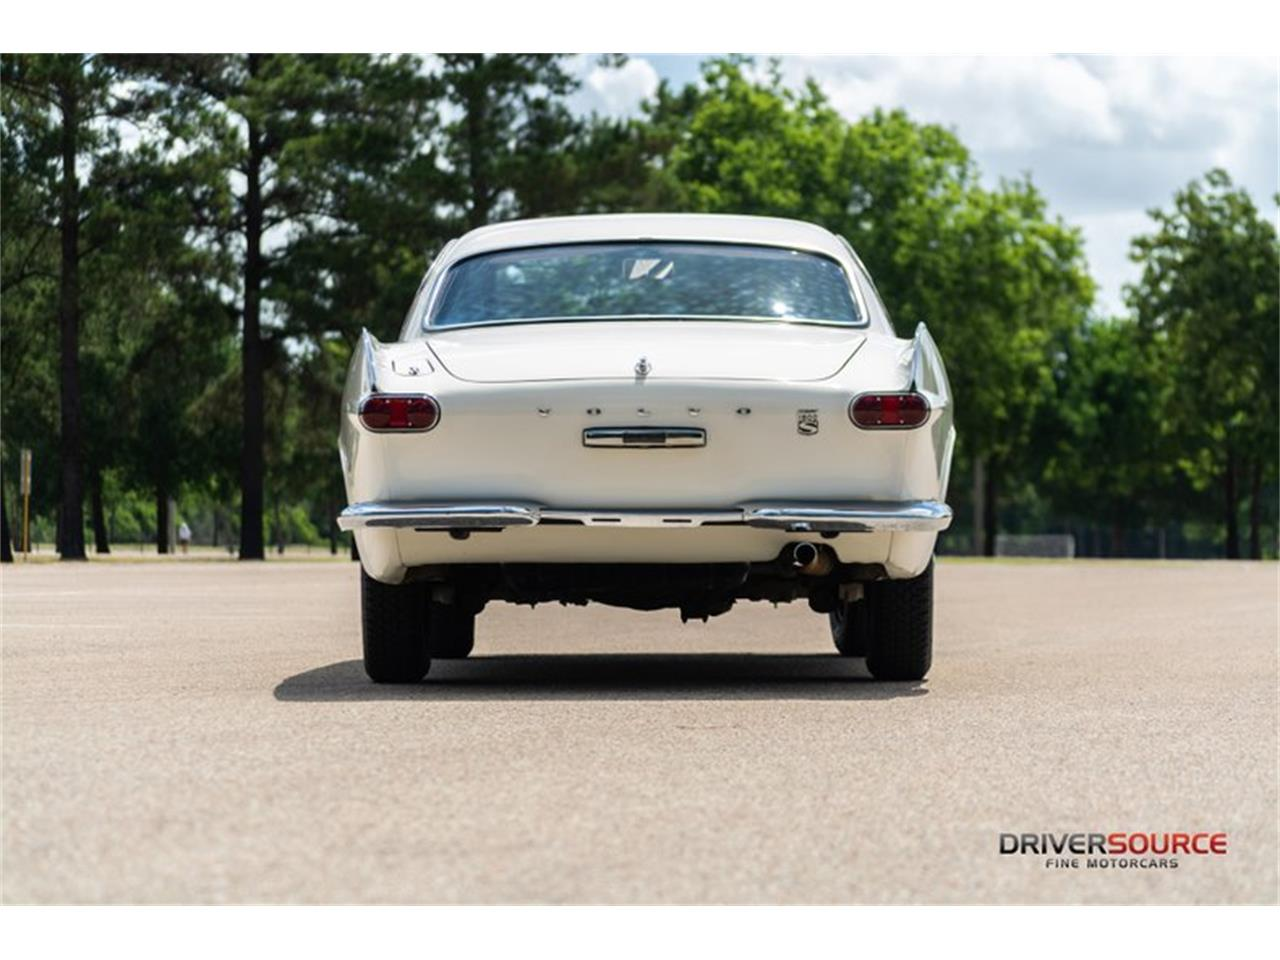 Large Picture of Classic 1964 P1800E located in Houston Texas - $49,250.00 Offered by Driversource - NNM3